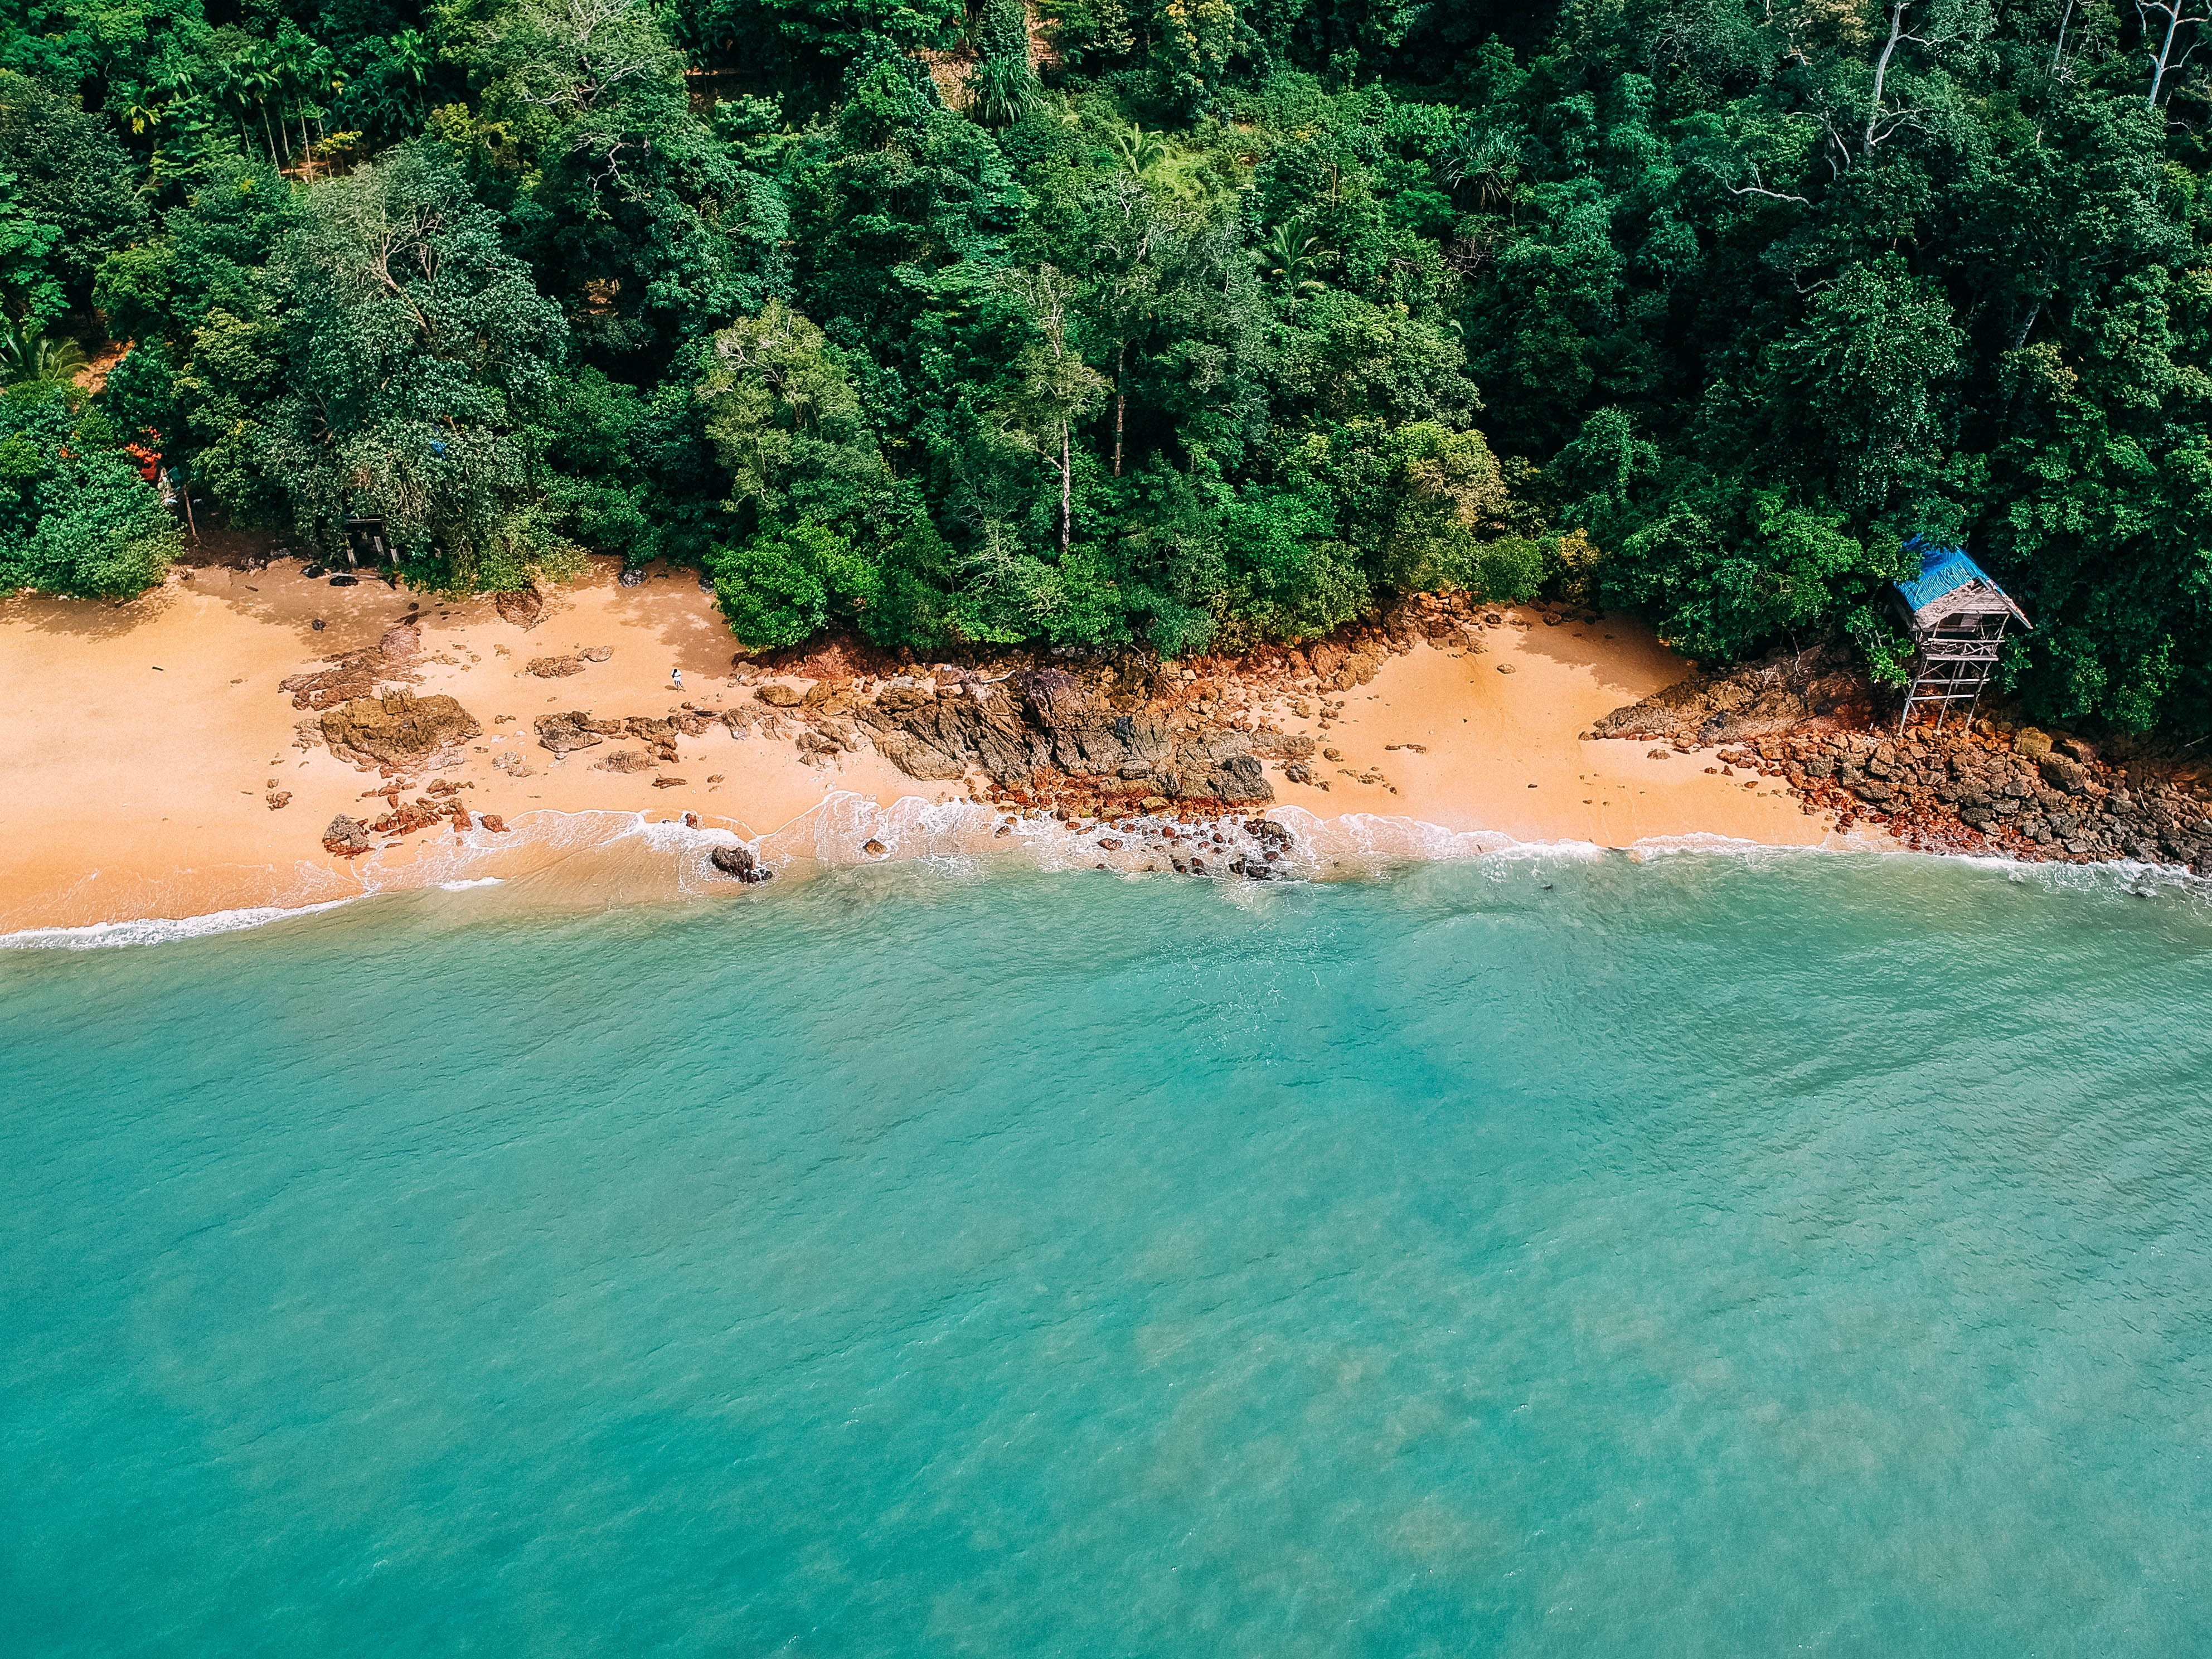 aerial photography of seashore near trees